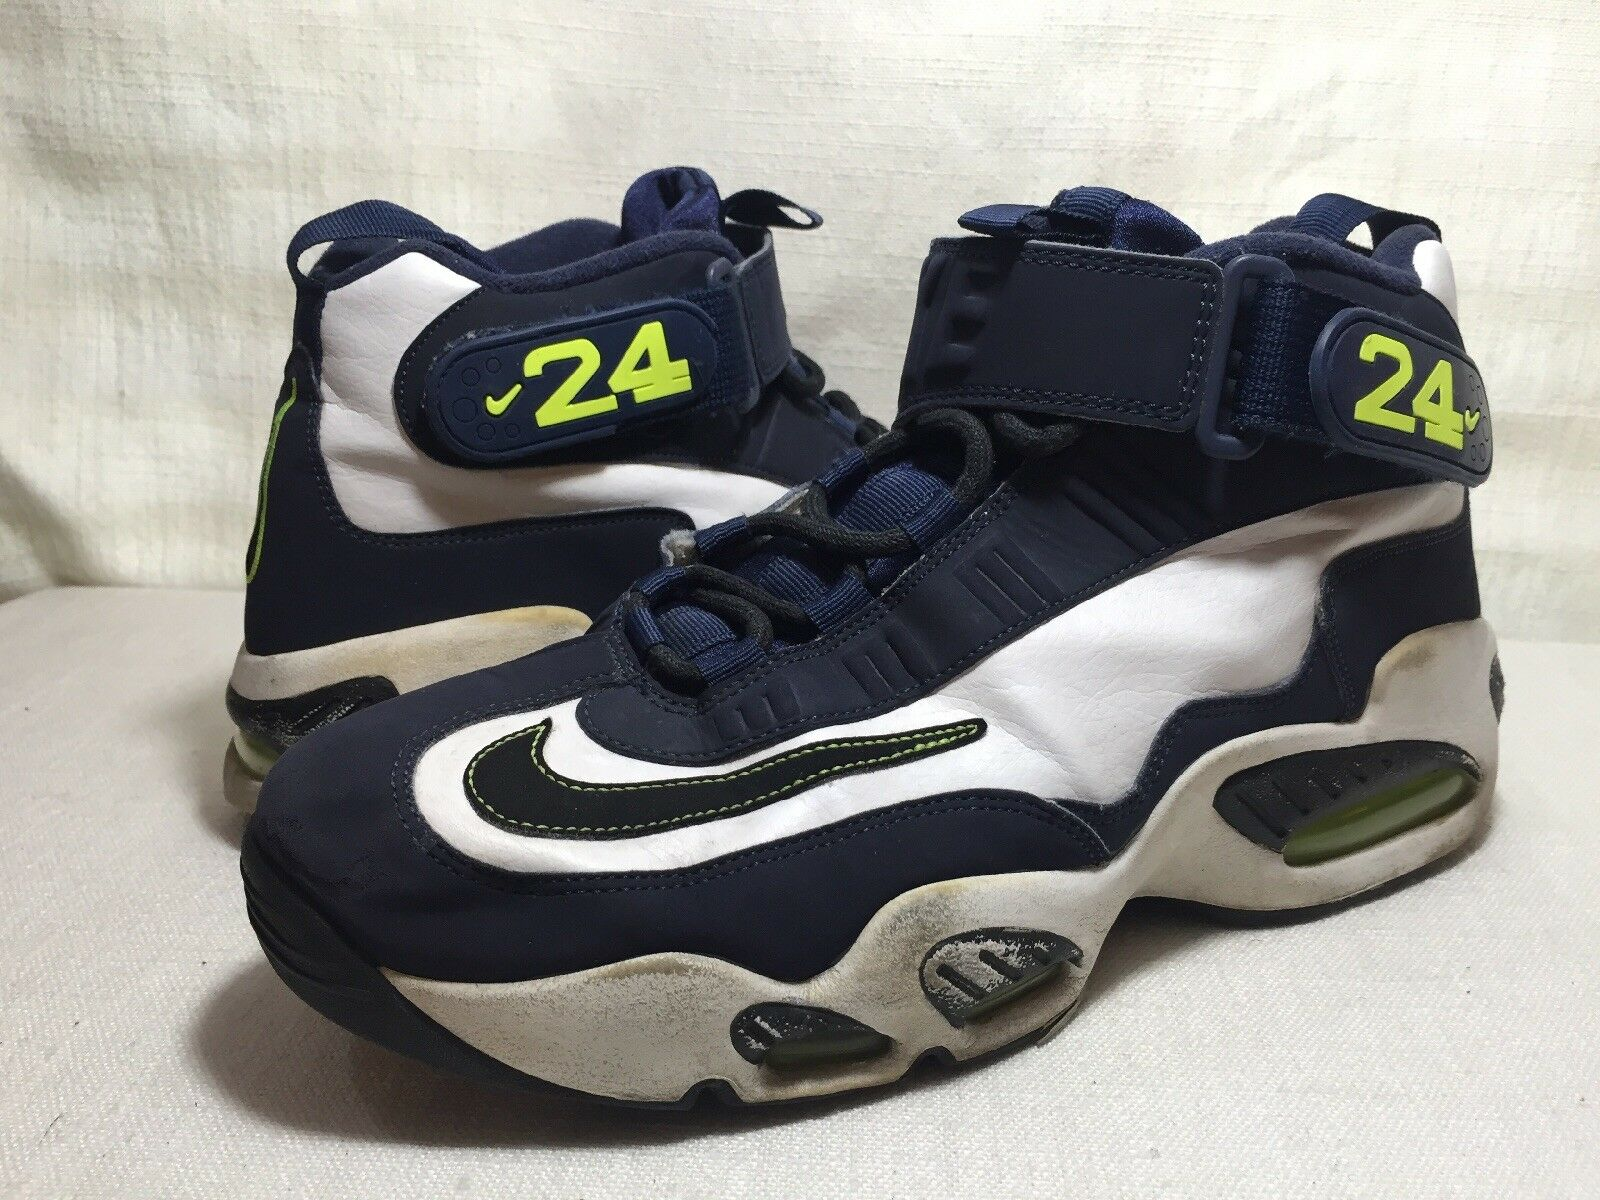 Mens Nike Air Griffey Max 1 Stealth Seattle Seahawks Navy Size 10.5 (354912-102)